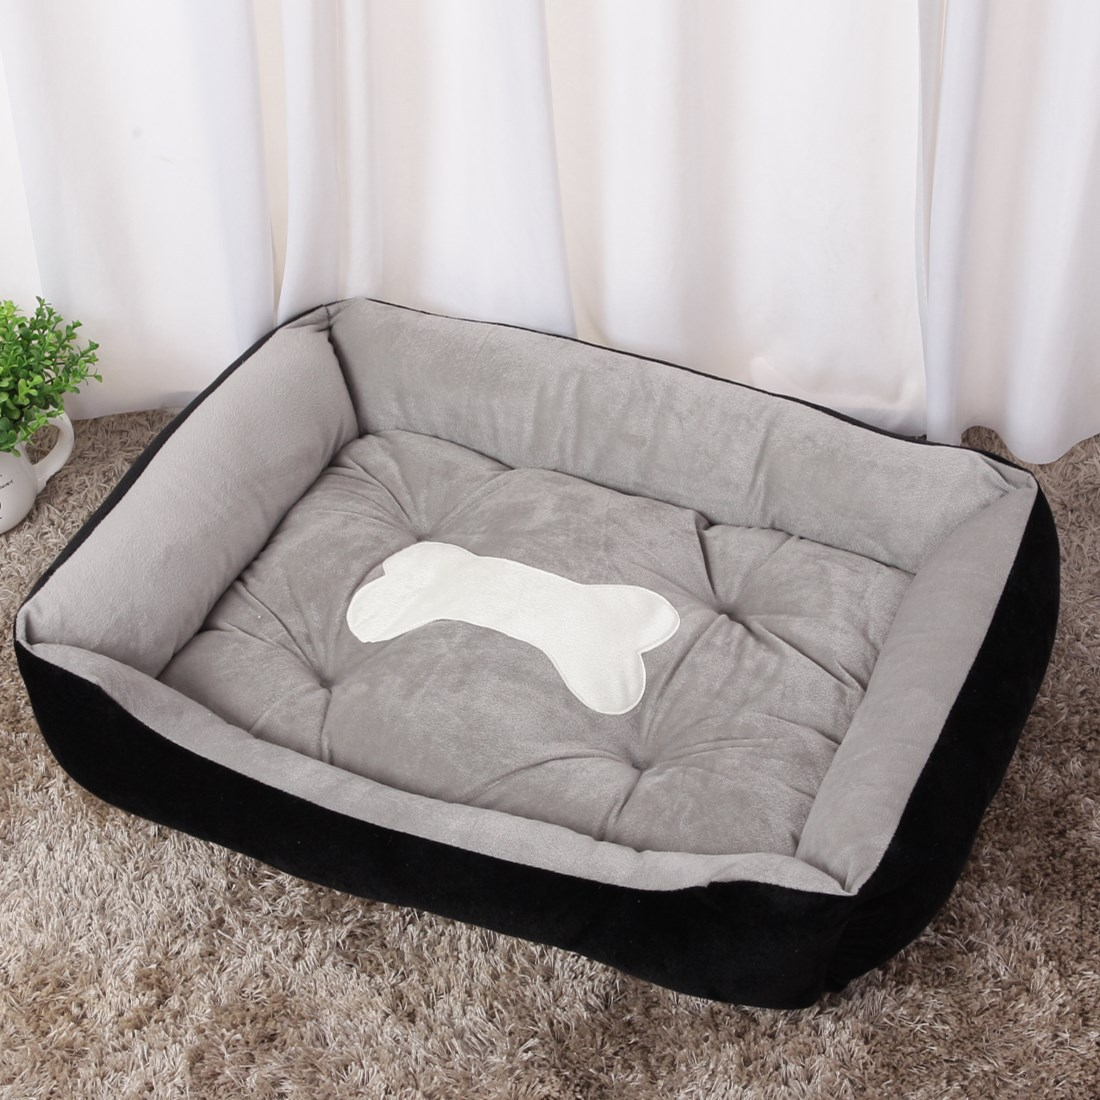 5 Colors Soft Polar Fleece Dog Beds Winter Warm Pet Heated Mat Small Dog Puppy Kennel House for Cats Sleeping Bag Nest Cave Bed5 Colors Soft Polar Fleece Dog Beds Winter Warm Pet Heated Mat Small Dog Puppy Kennel House for Cats Sleeping Bag Nest Cave Bed